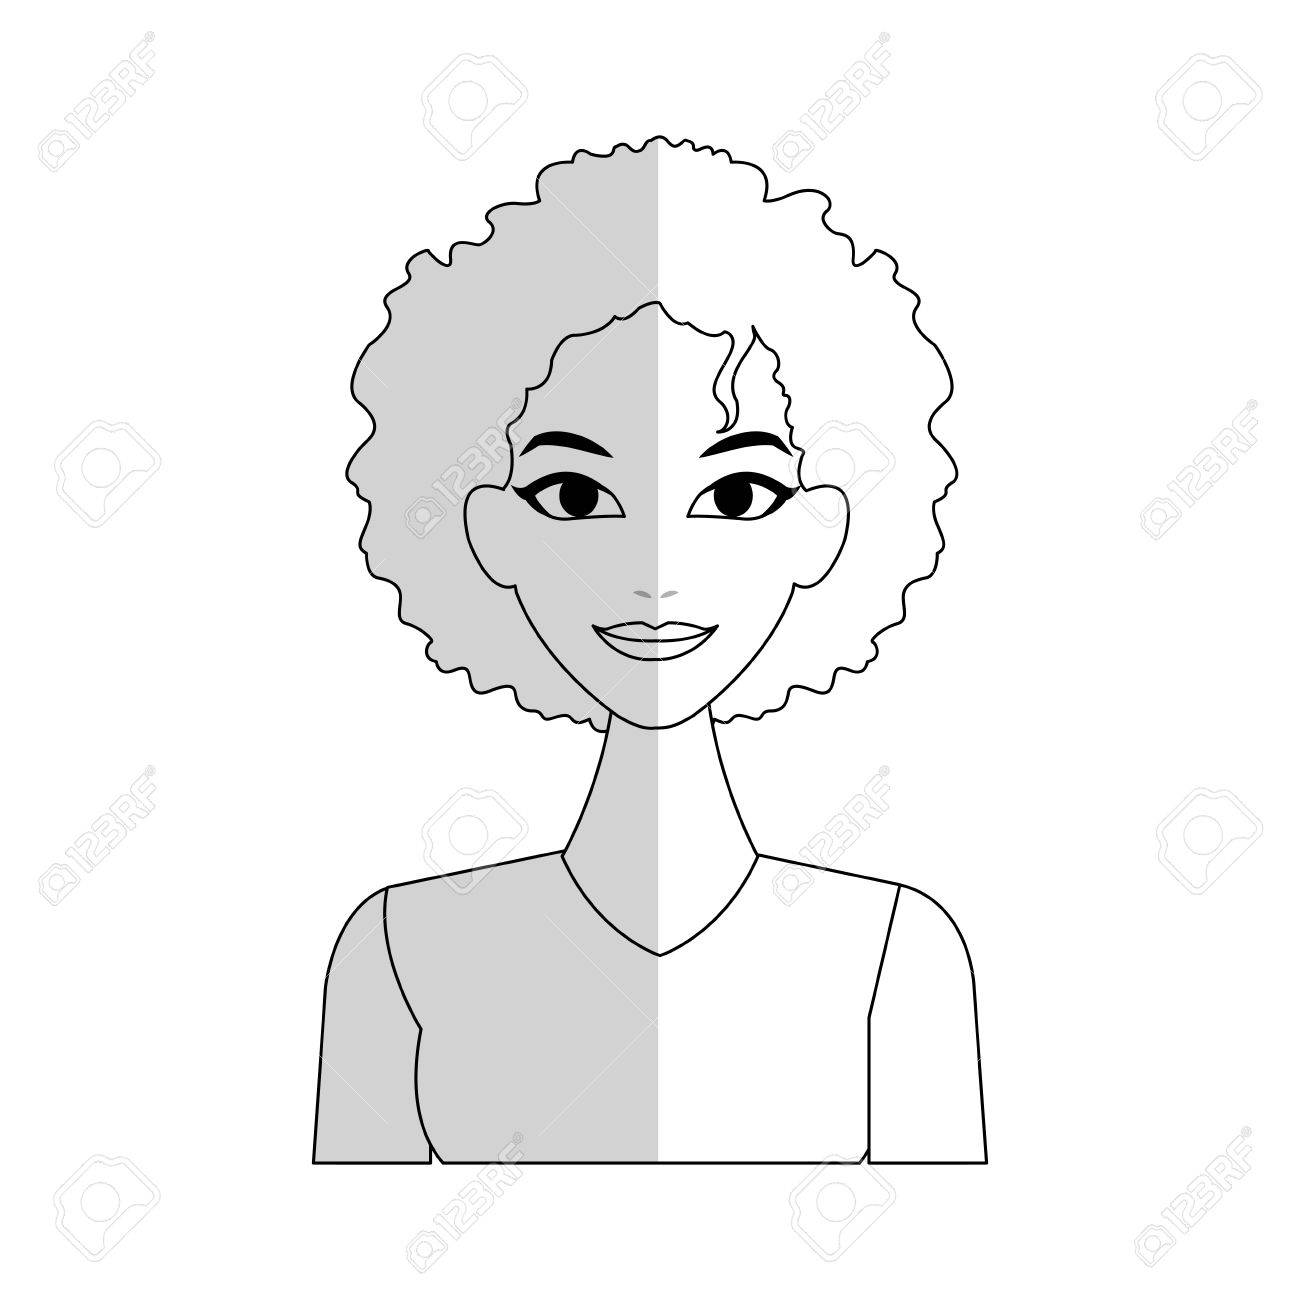 Pretty Young Woman With Curly Hair Icon Image Vector Illustration